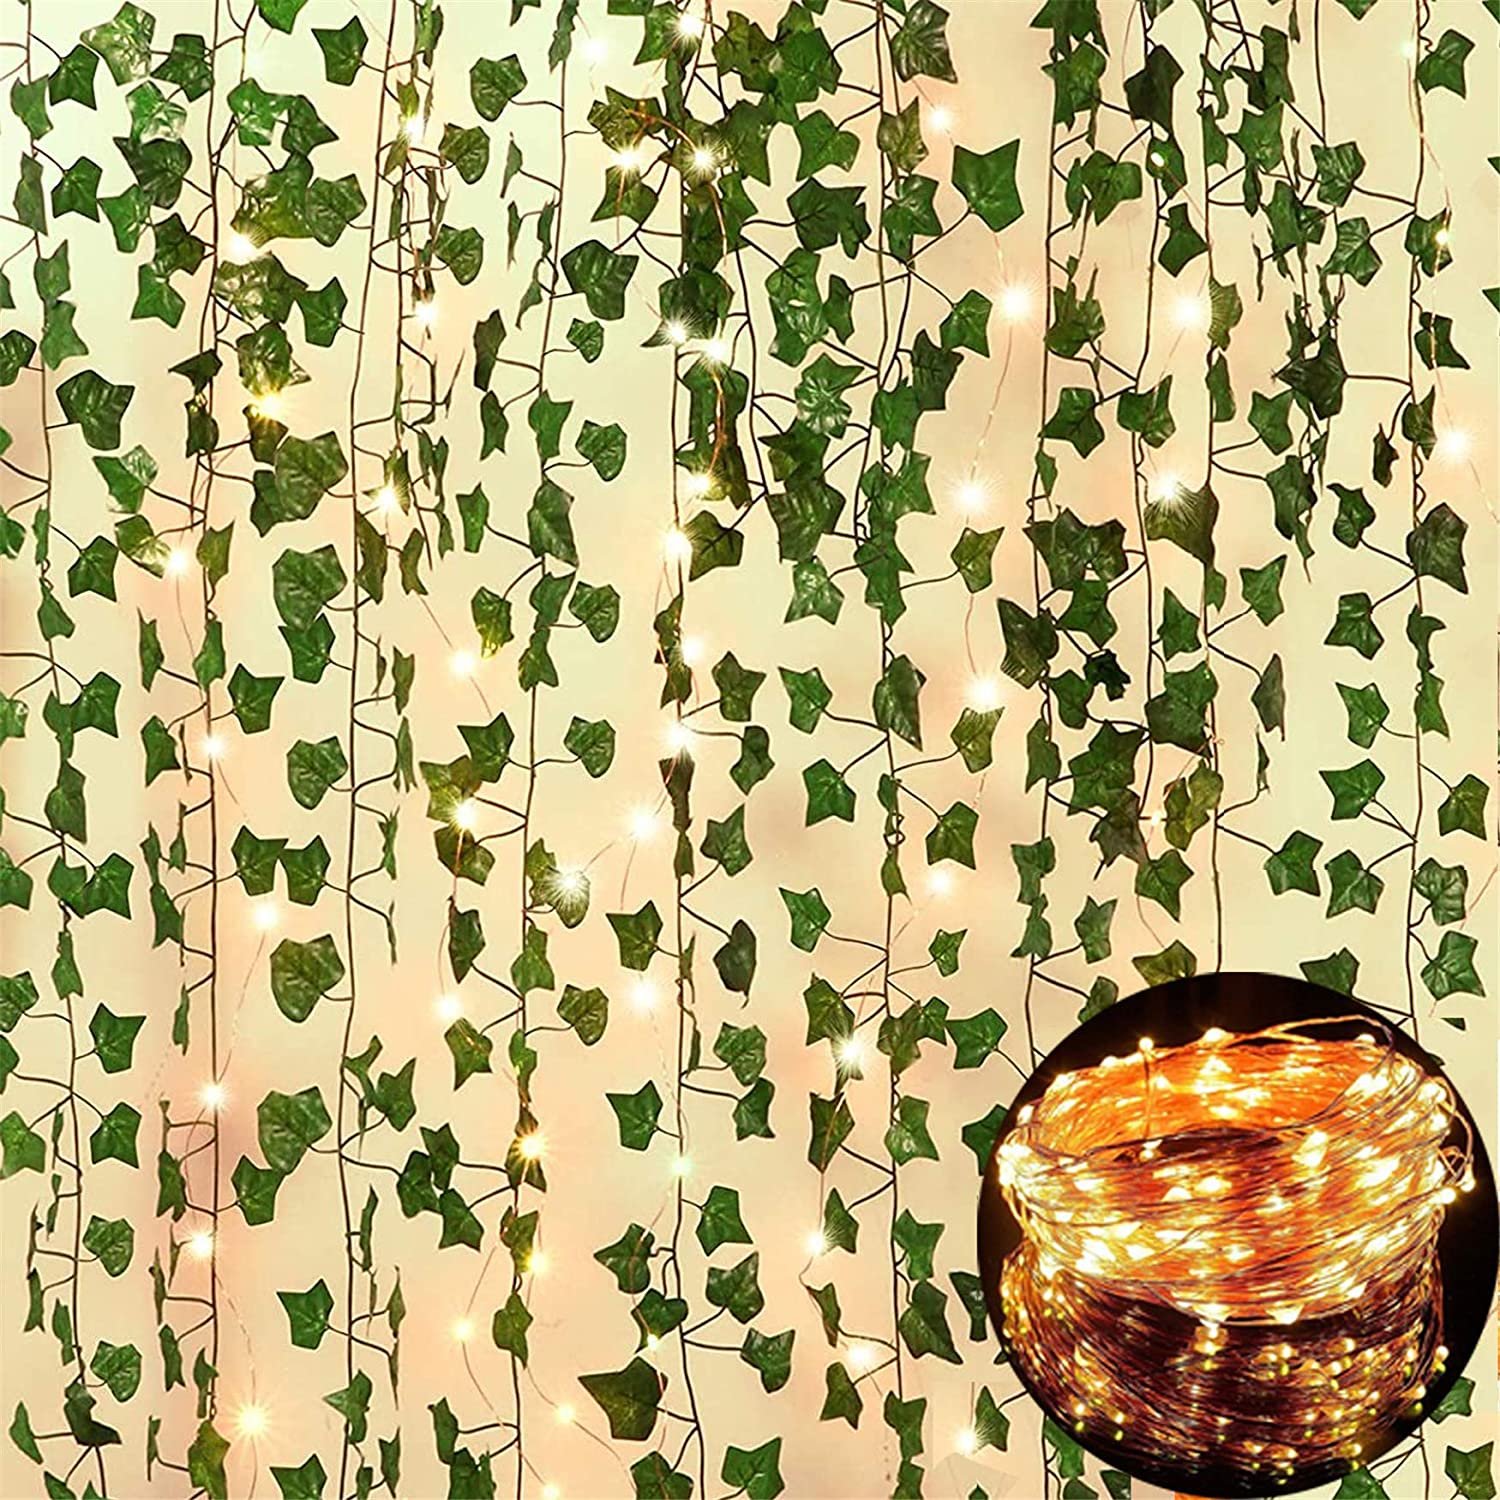 Amazon Com 12 Pack Fake Vines For Room Decor With 100 Led String Light Artificial Ivy Garland Hanging Plants Faux Greenery Leaves Bedroom Aesthetic Decor For Home Garden Wall Wedding Kitchen Dining